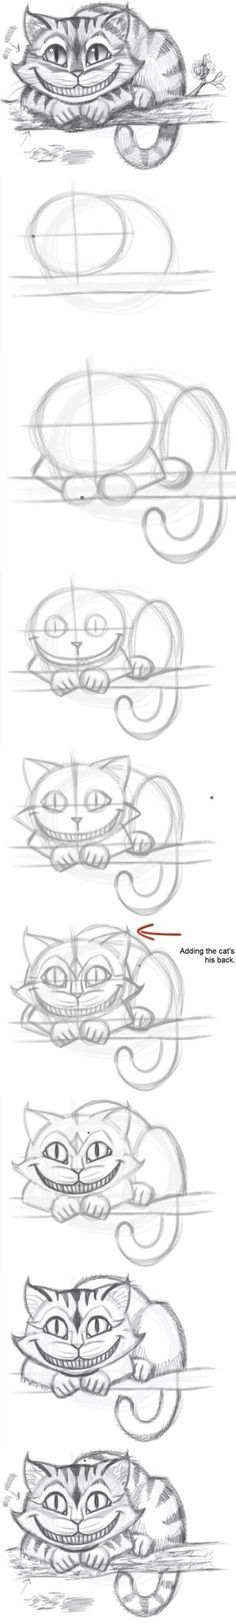 Meine Disney Zeichnung - Cheshire Cat from Alice In Wonderland. How to draw the Cheshire Cat - Logischesmädchen 44 - Pin Drawing Techniques, Drawing Tips, Drawing Sketches, Painting & Drawing, Drawing Ideas, Sketching, Sketch Ideas, Drawing Stuff, Easy Sketches